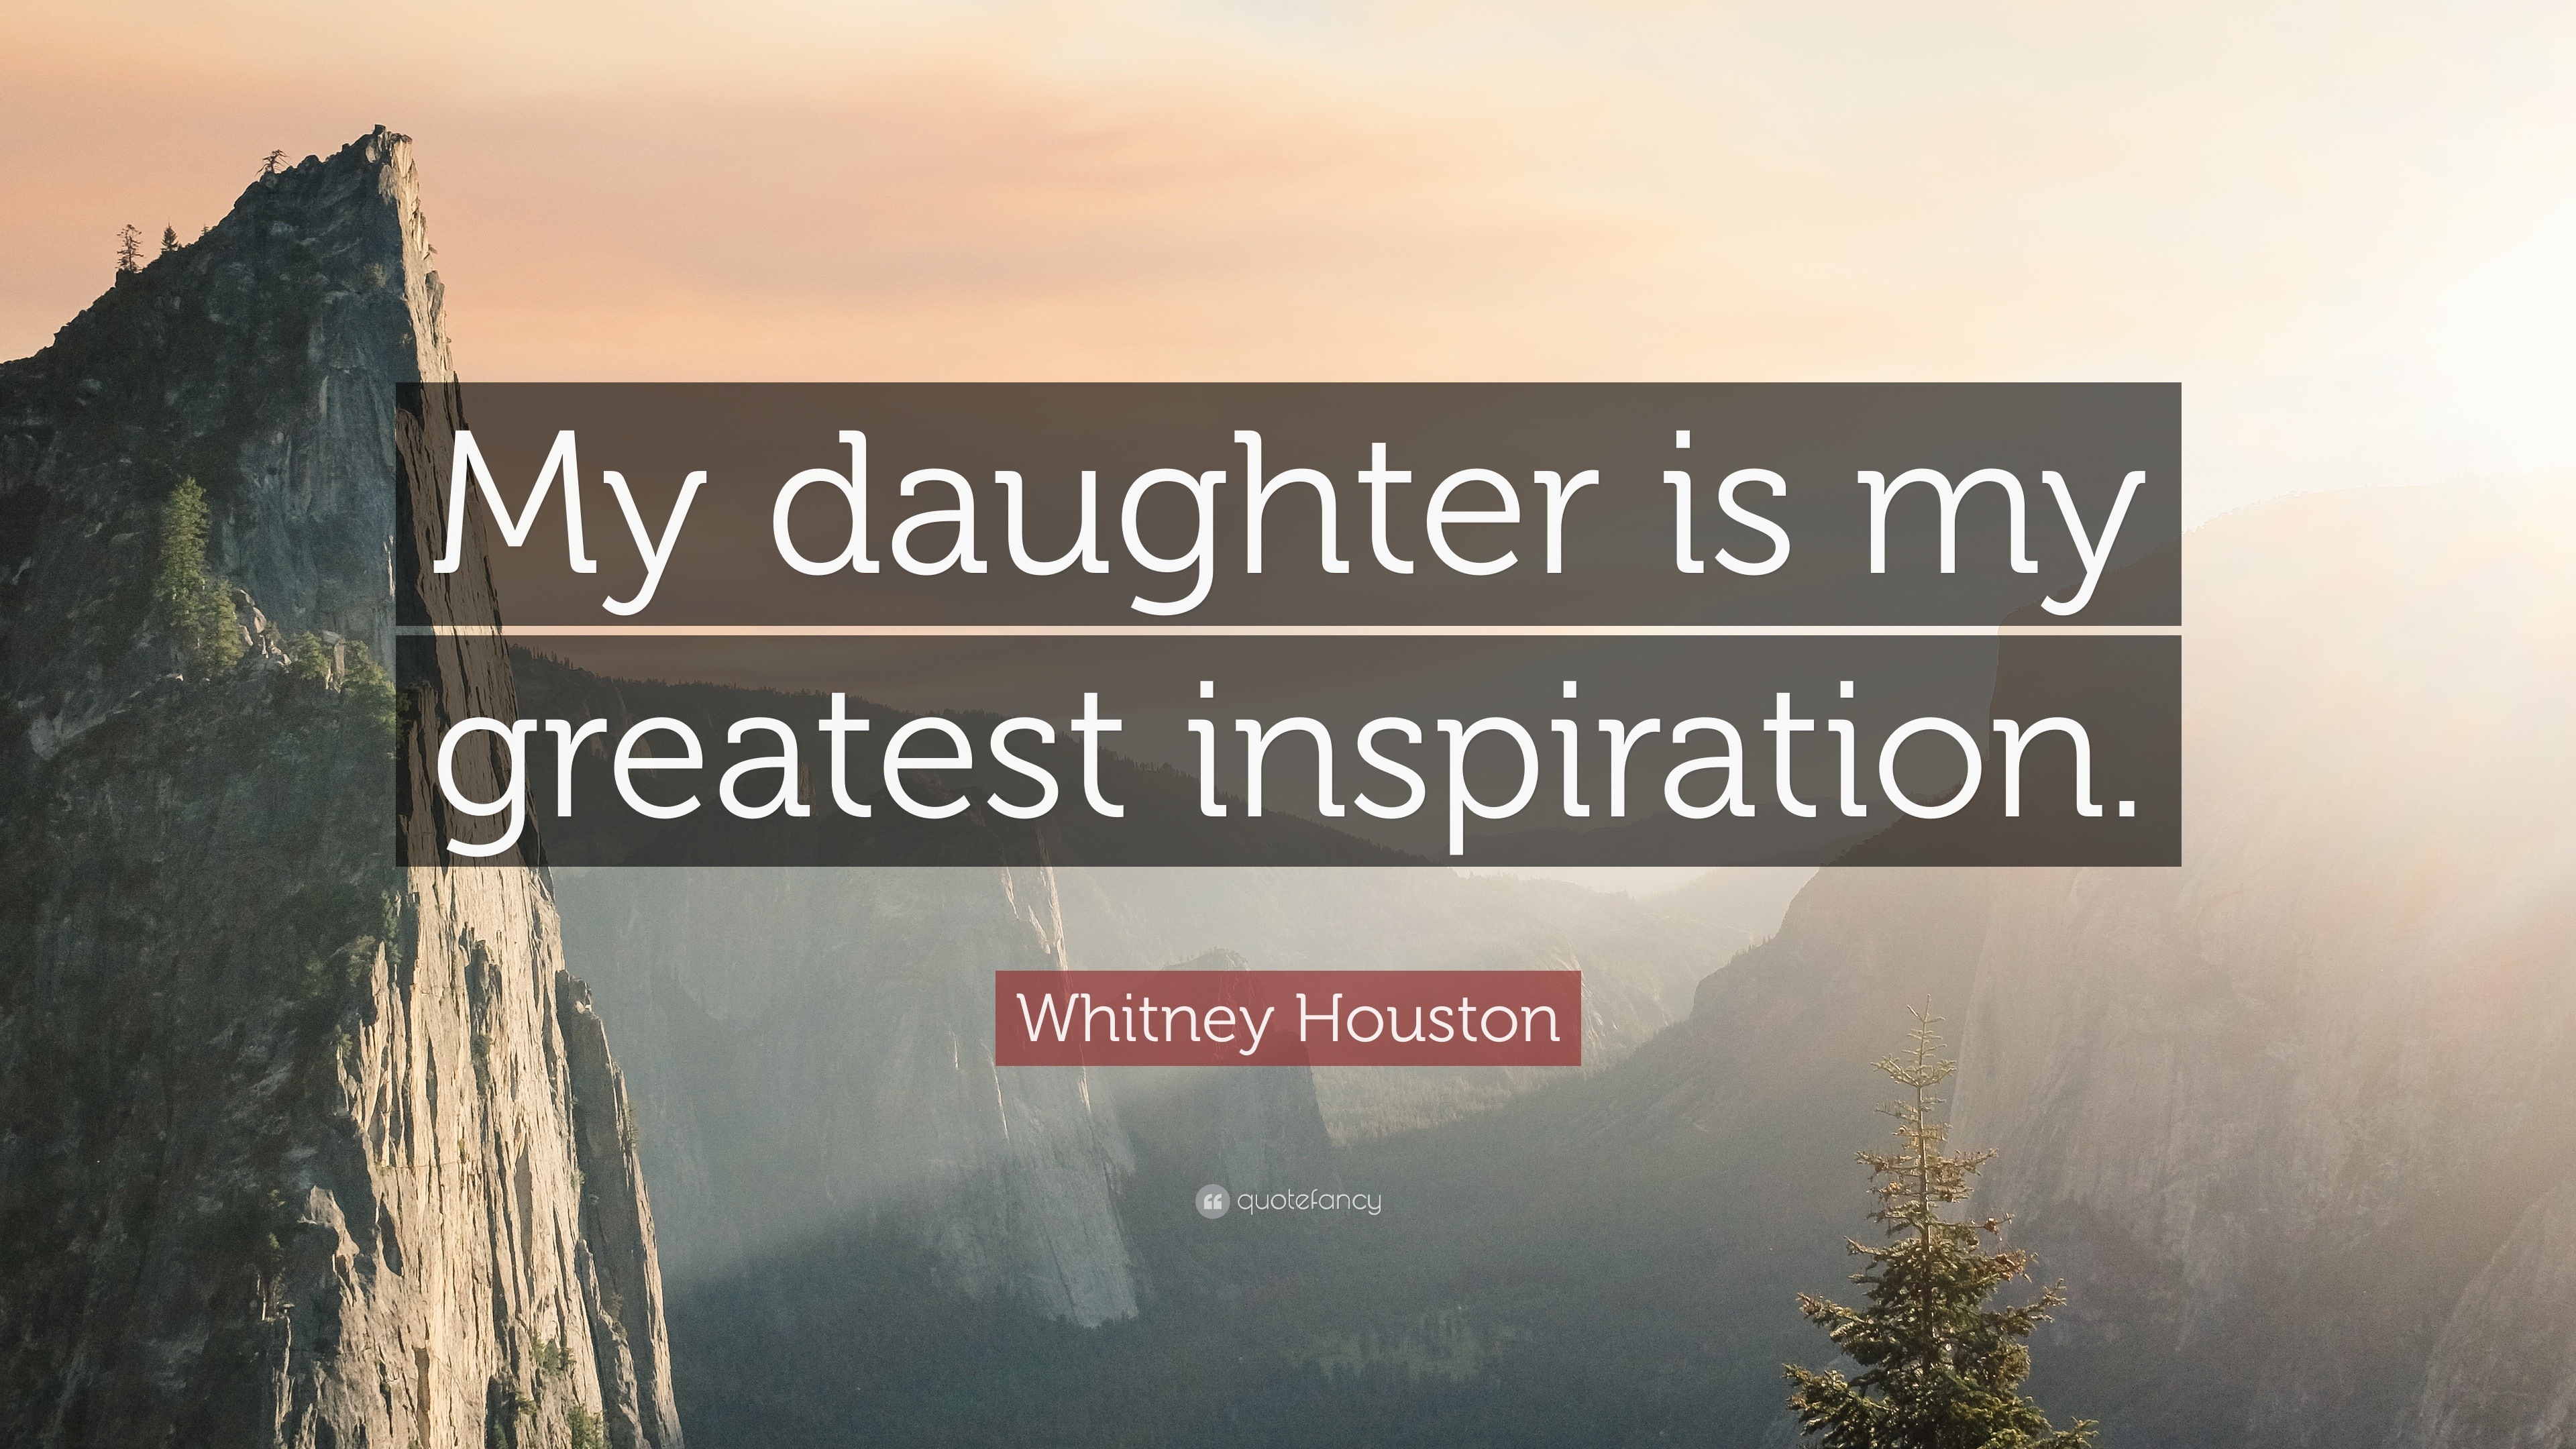 whitney houston quote my daughter is my greatest inspiration